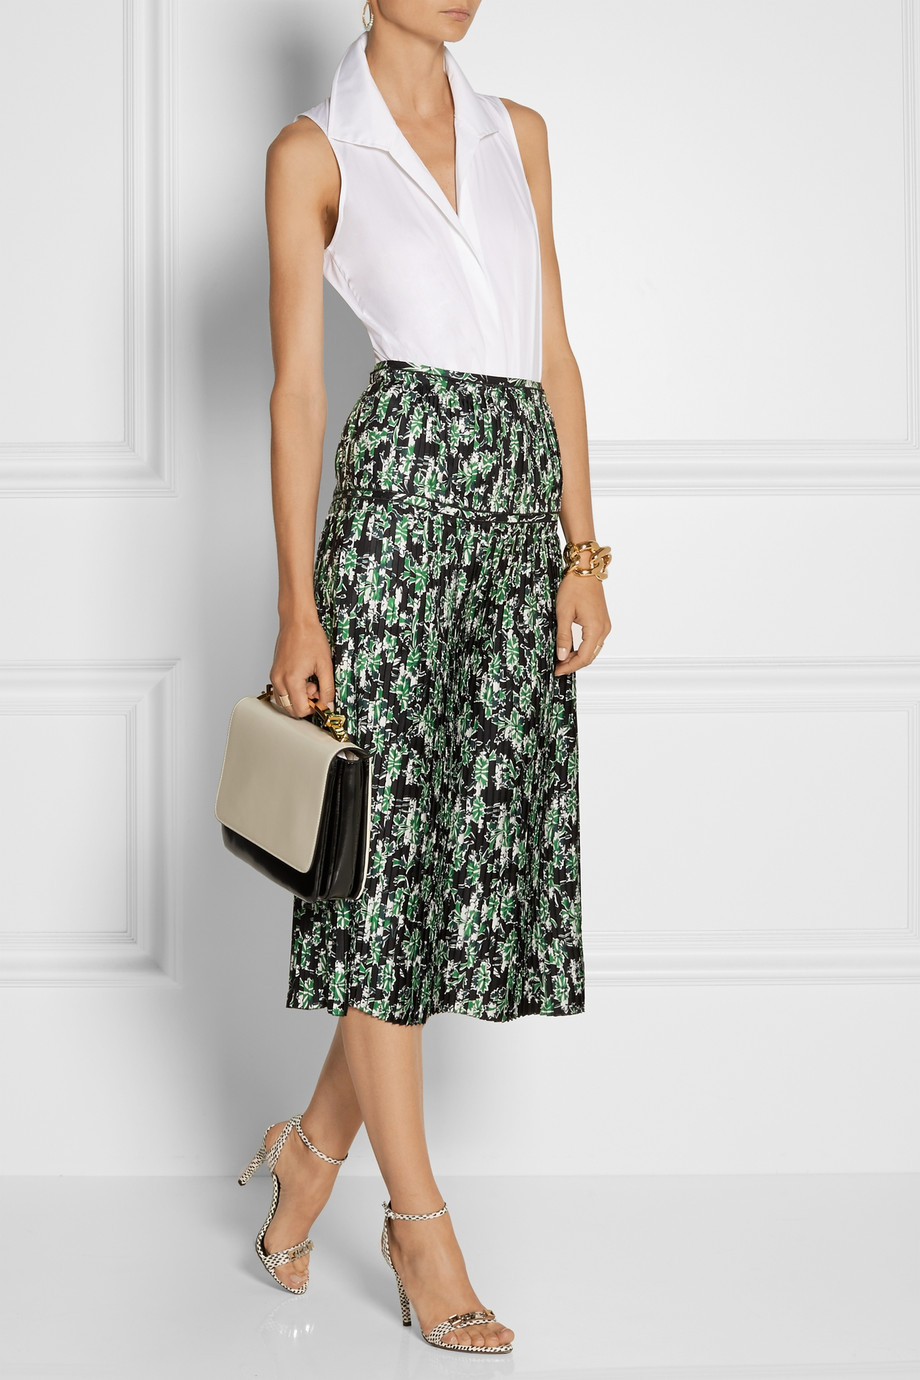 Marni Pleated Floral-Print Silk Midi Skirt in Green | Lyst